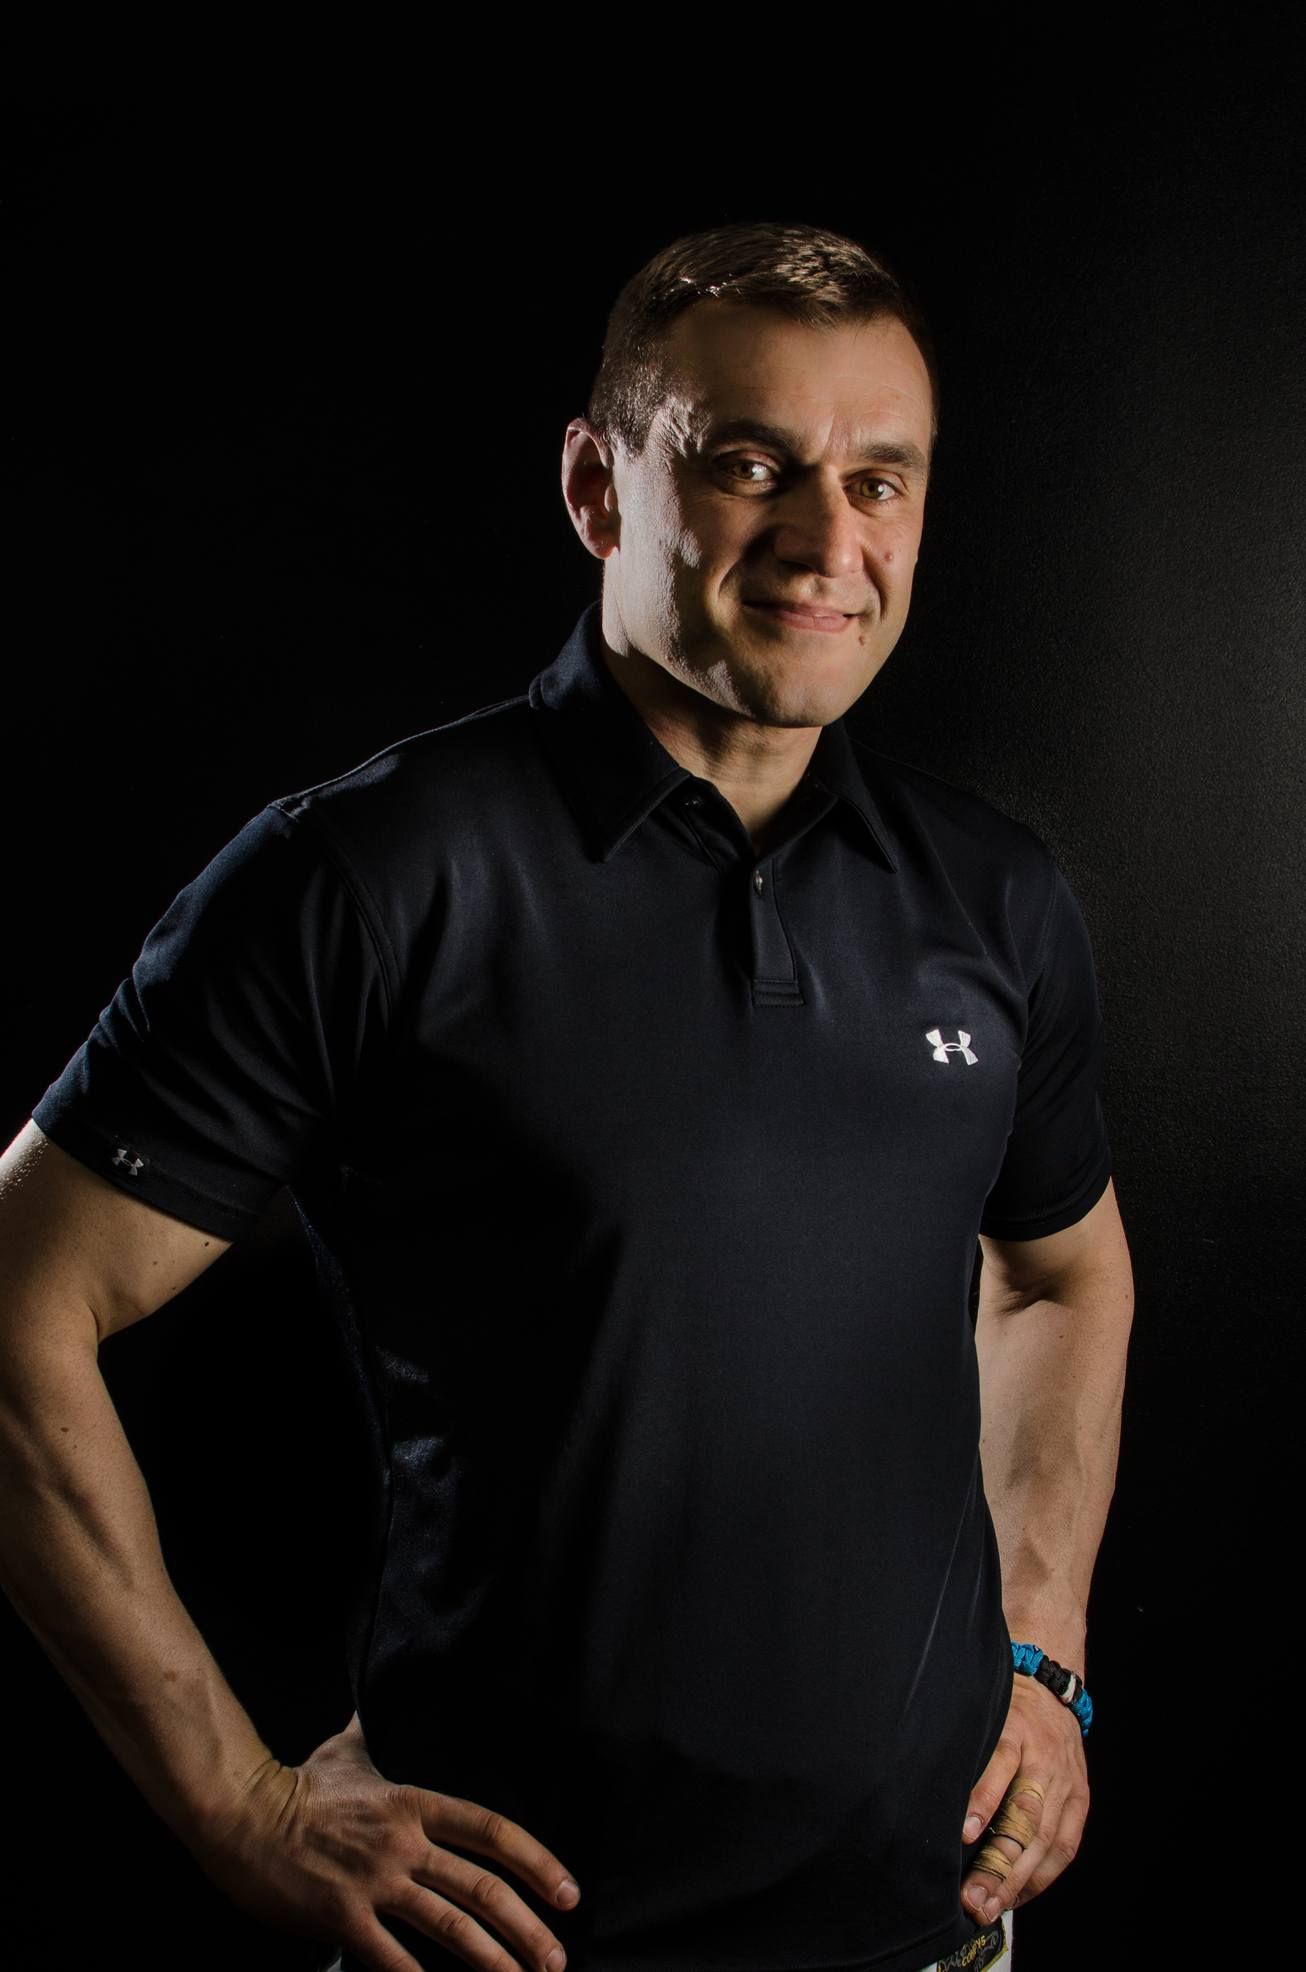 Best Personal Trainer in Columbus Ohio